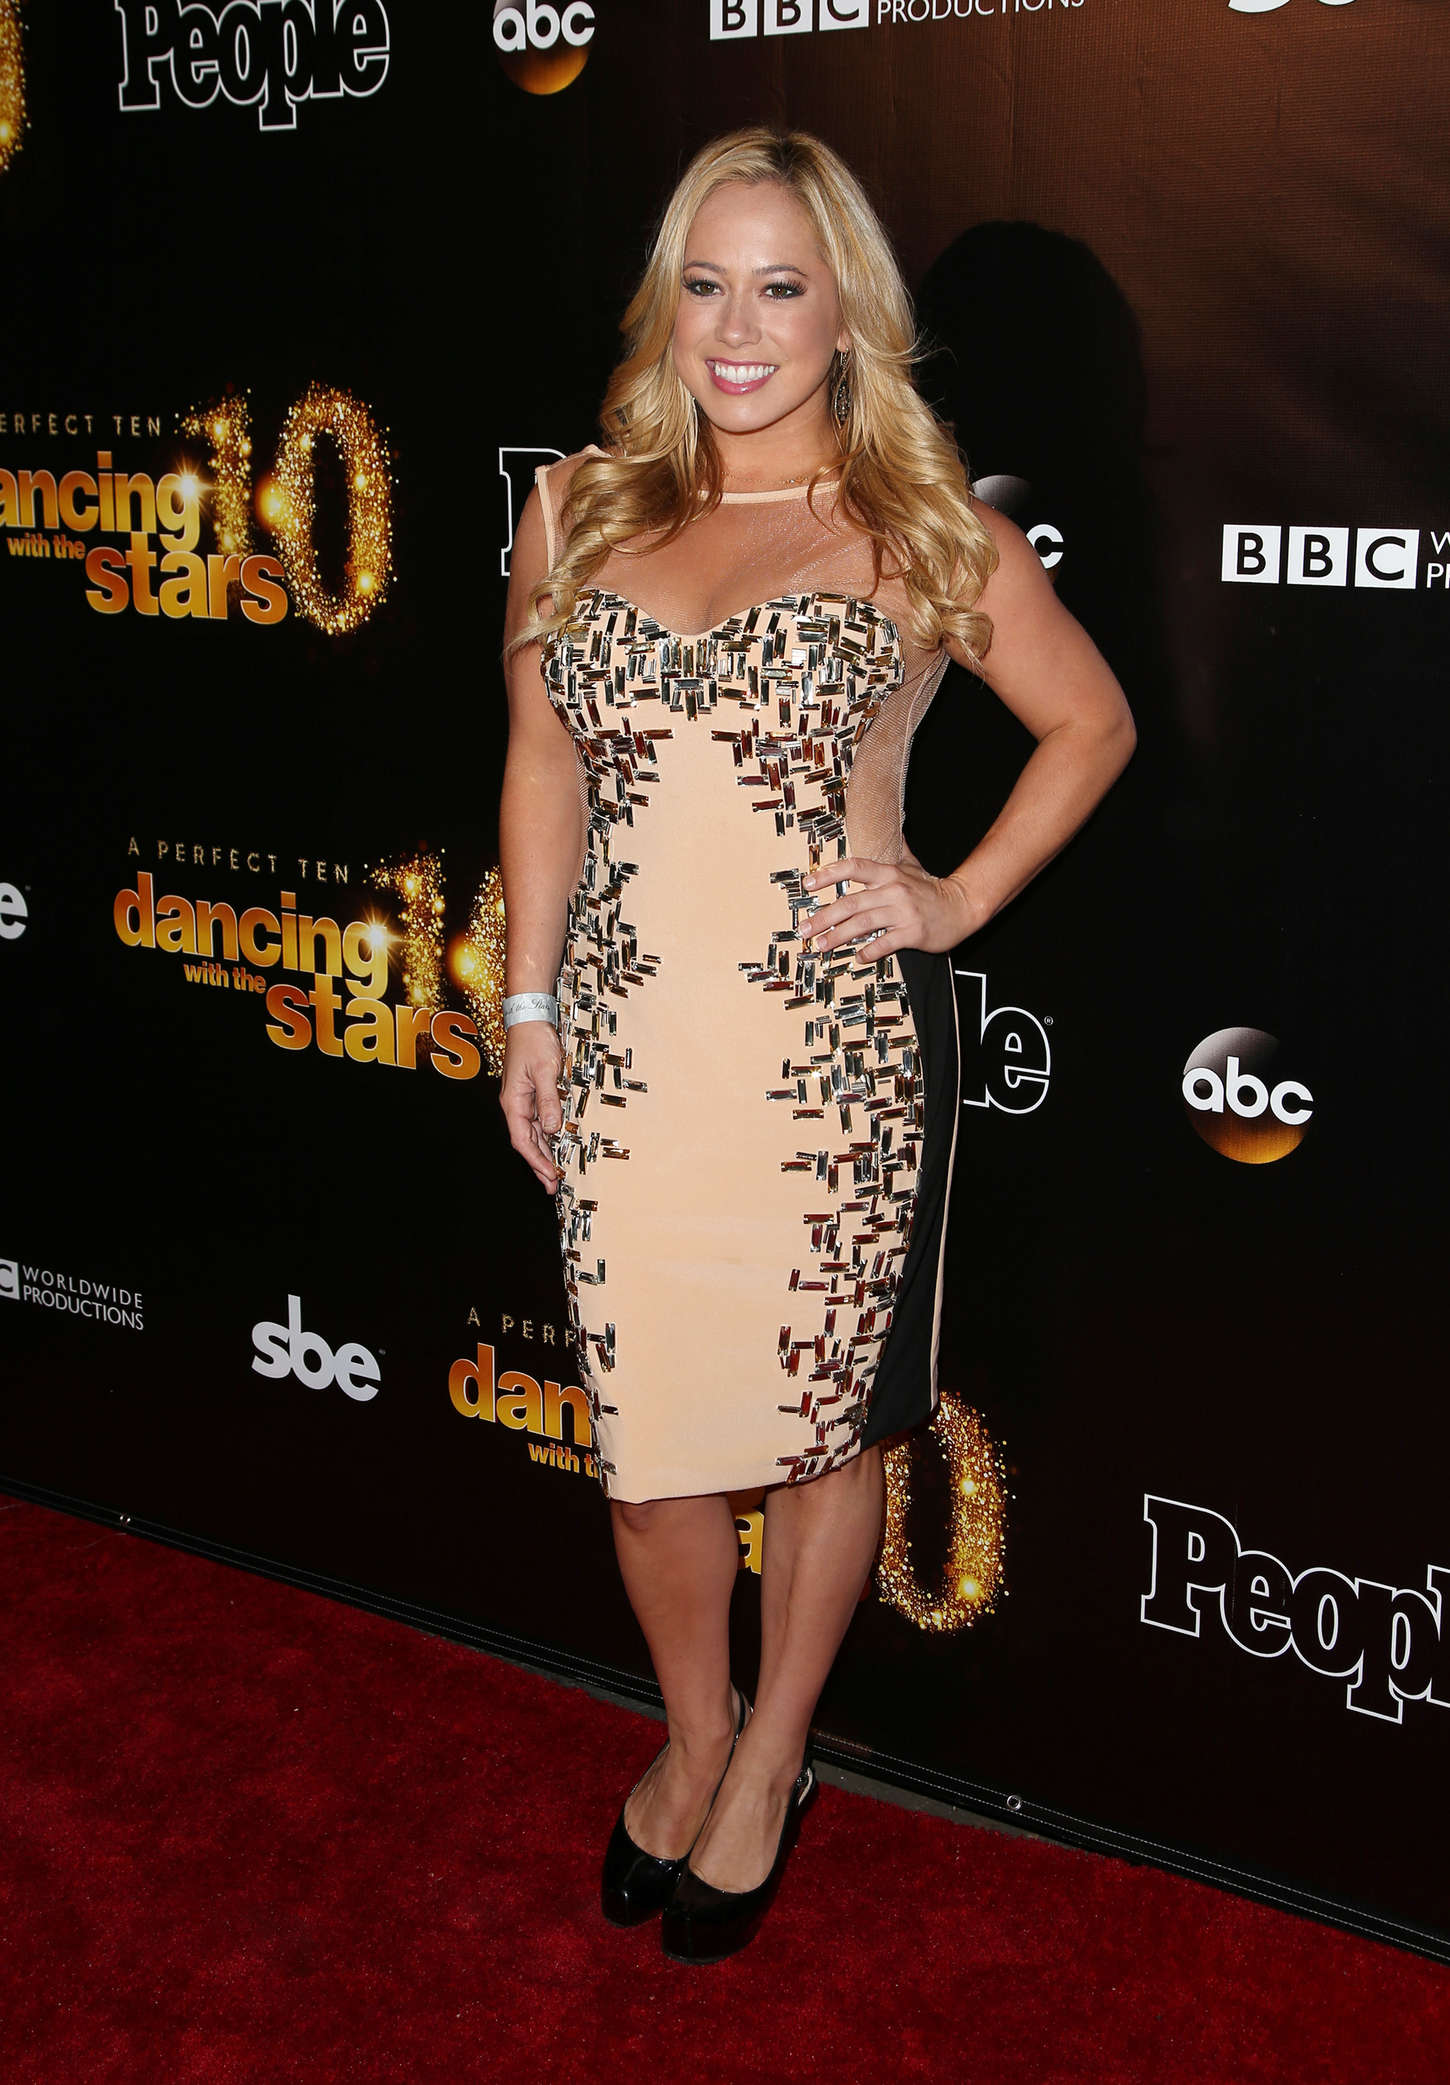 Sabrina Bryan Dancing With The Stars Anniversary Party in West Hollywood